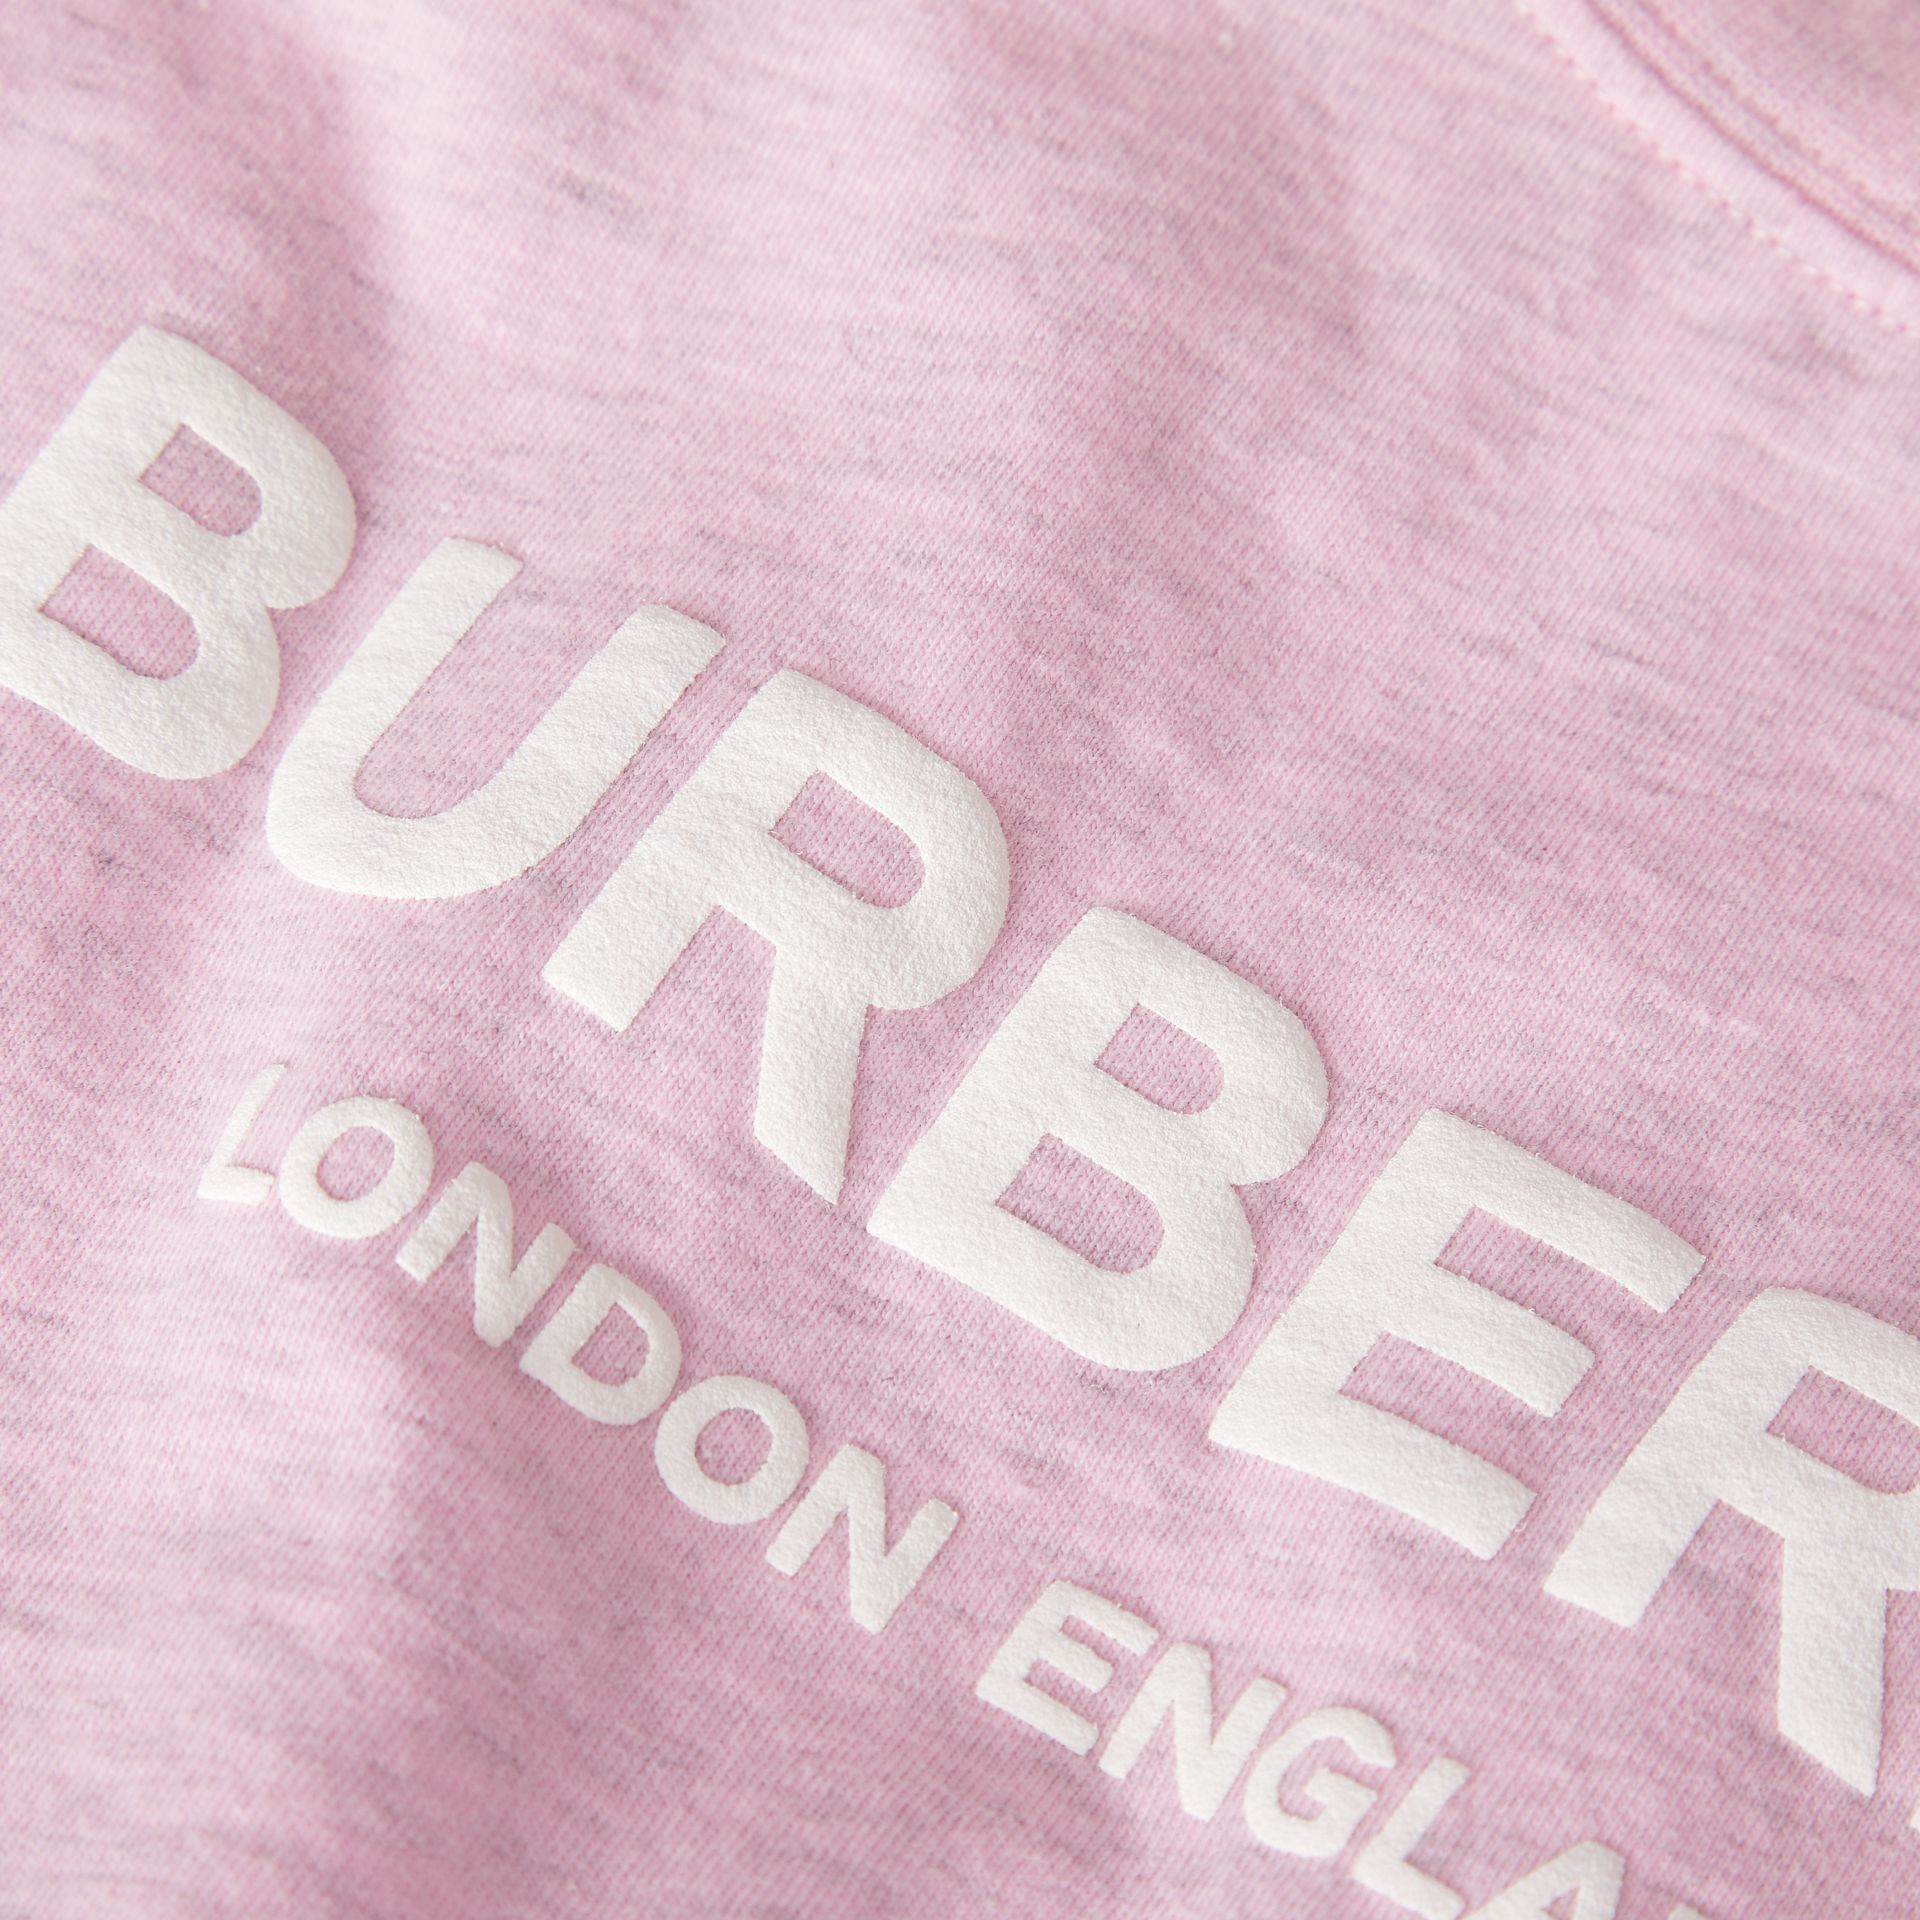 Logo Print Cotton T-shirt in Pale Neon Pink - Children | Burberry United Kingdom - gallery image 1